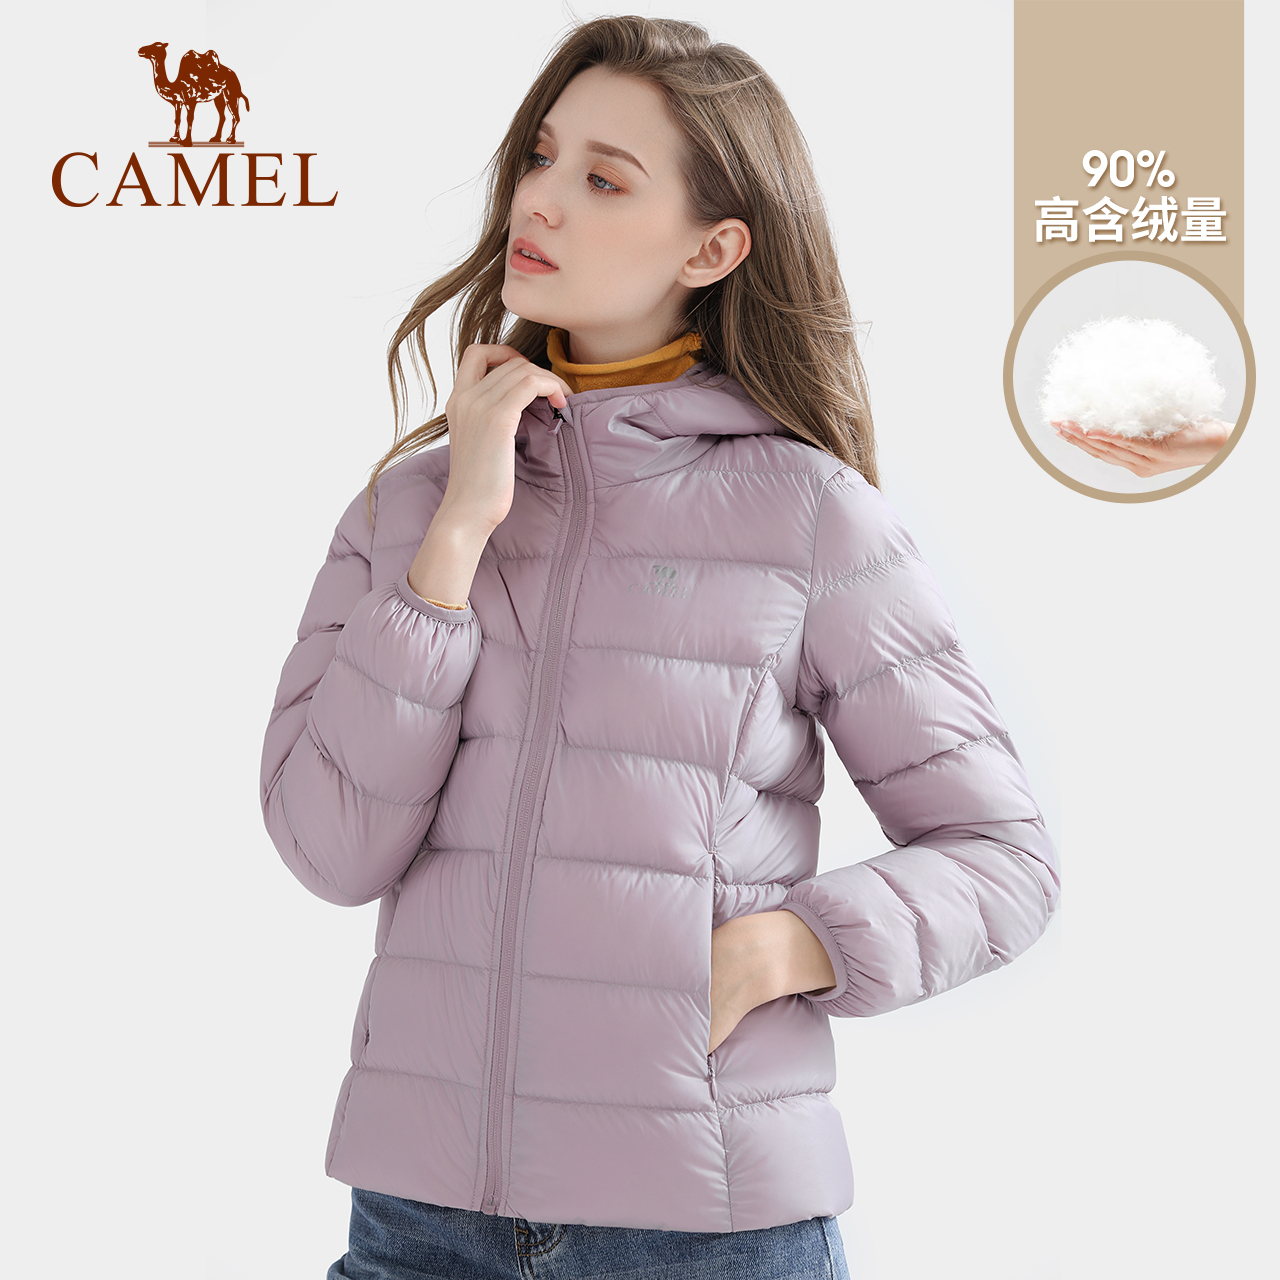 Camel outdoor light down jacket womens 2021 windproof warm outdoor hooded down jacket mens and womens hooded jacket